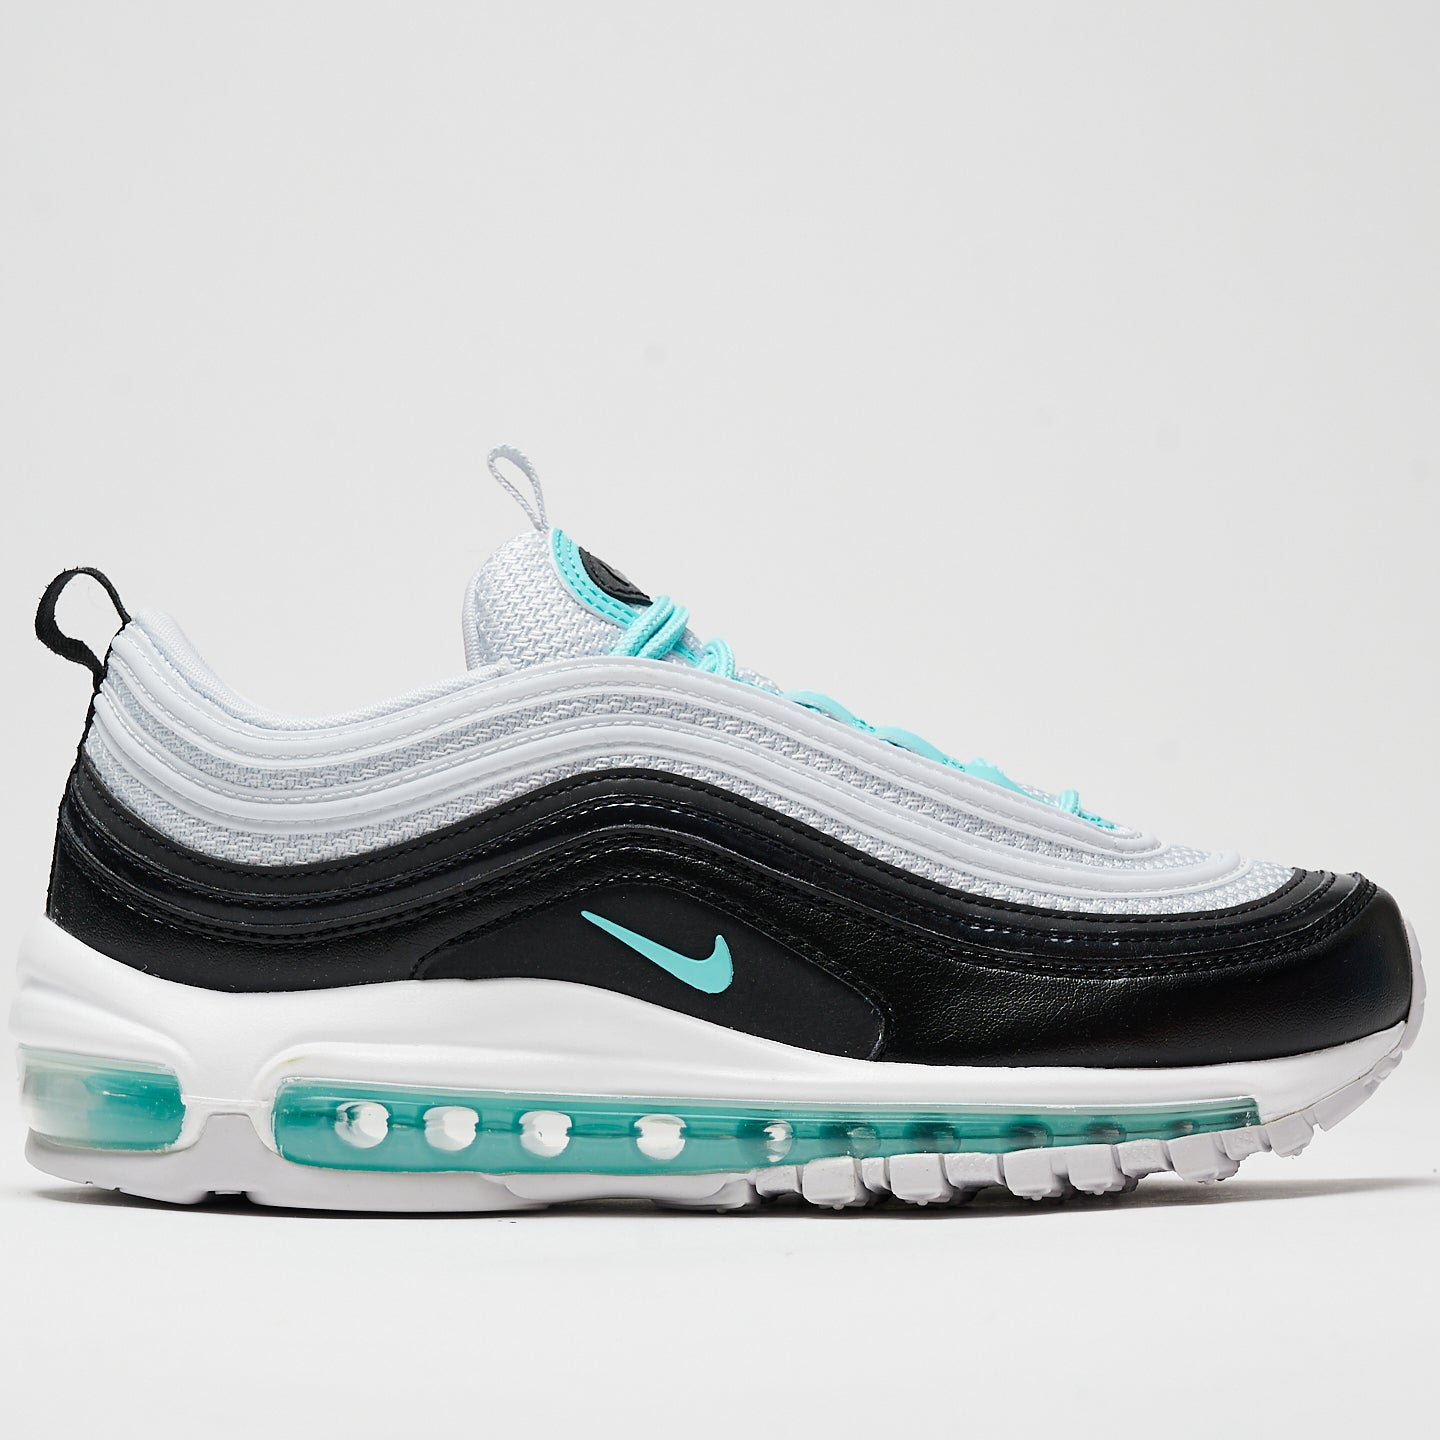 NIKE W'S FOOTWEAR AIR MAX 97 - PURE PLATINUM/AURORA GREEN